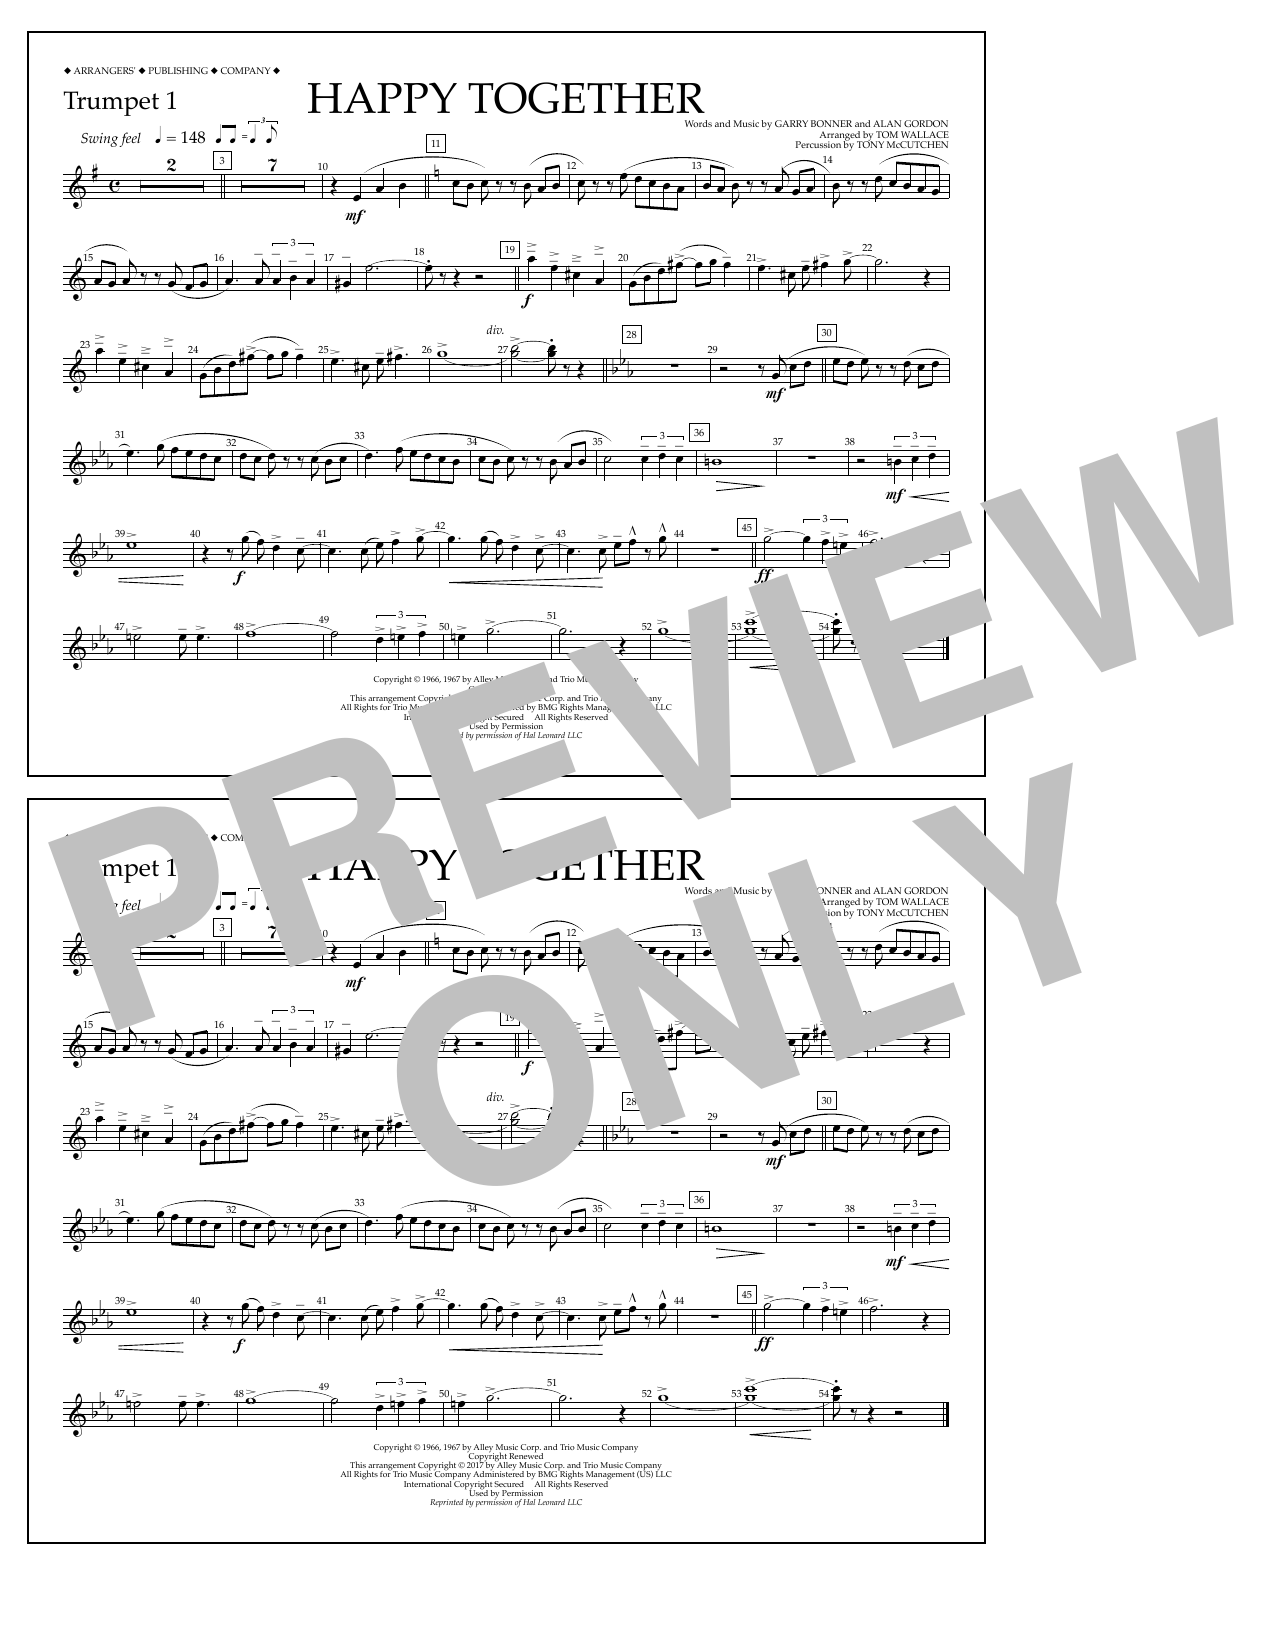 Happy Together - Trumpet 1 Sheet Music